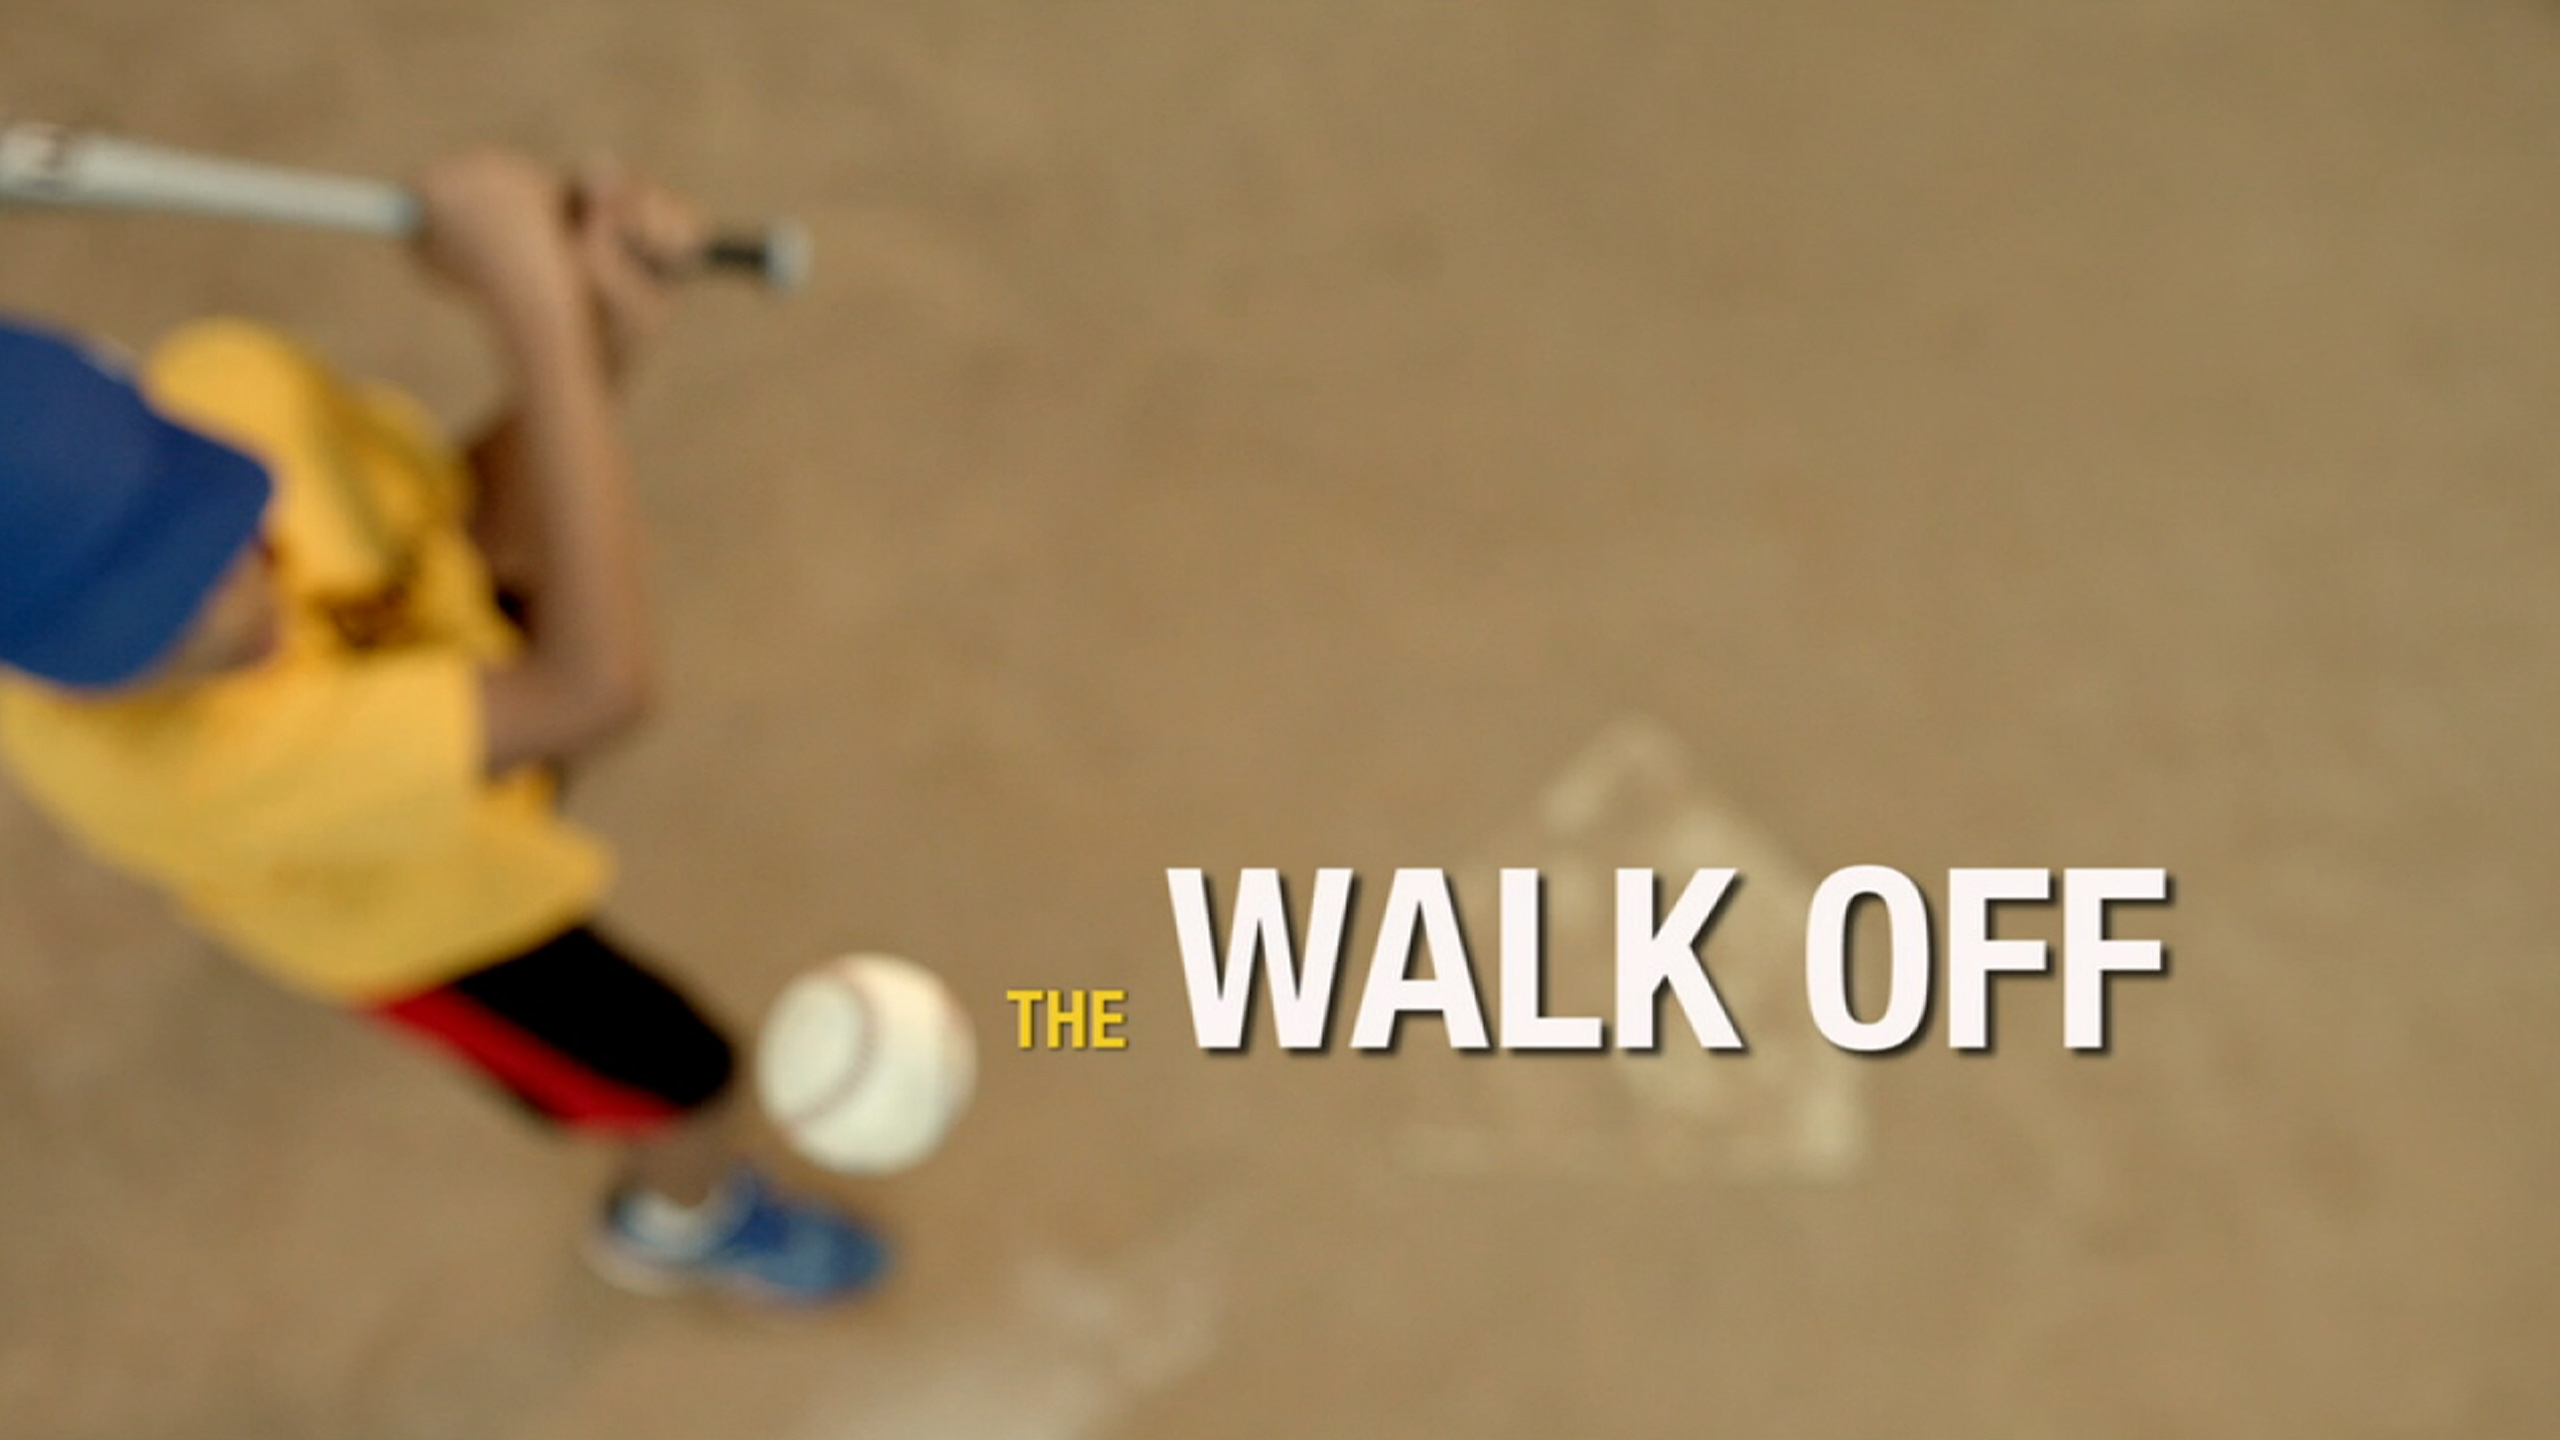 SEC Storied: The Walk Off Presented by Hardee's